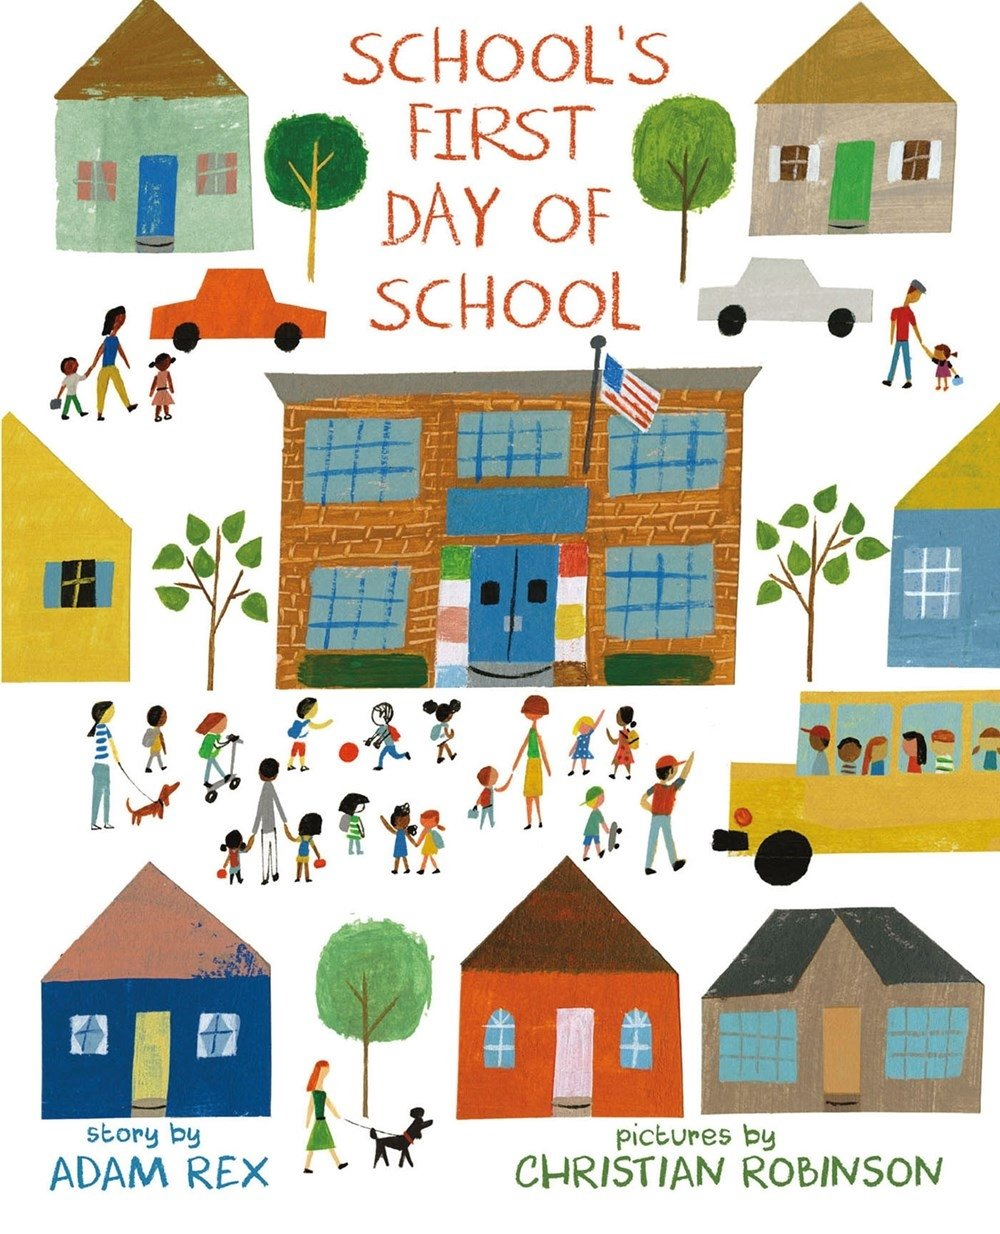 School's First Day of School by Roaring Brook Press (Image #1)